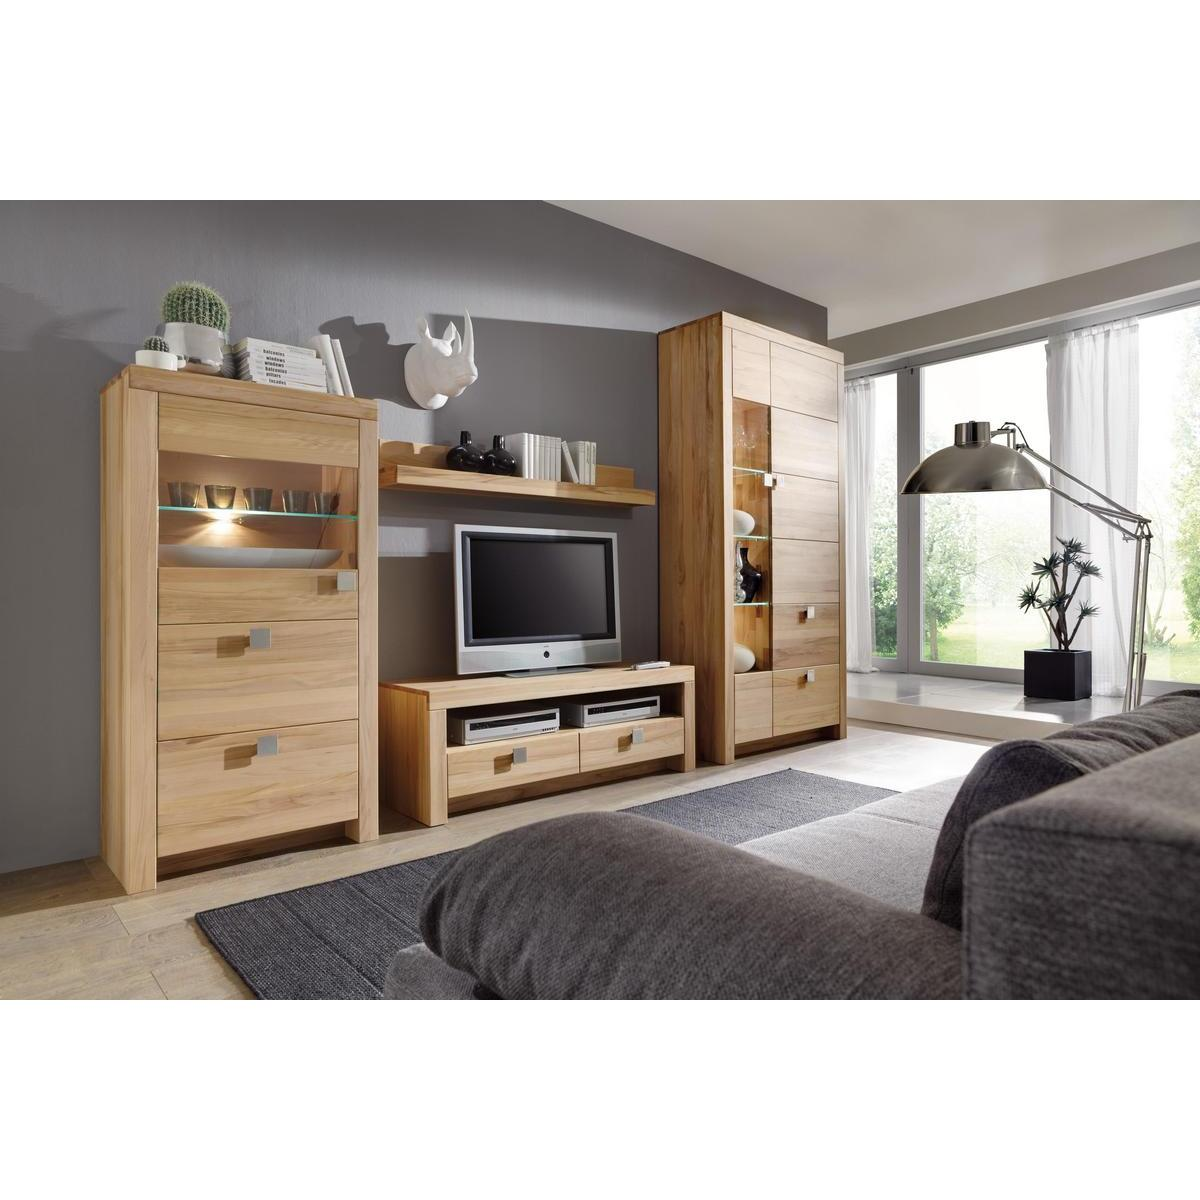 massivholz wohnwand messina kernbuche massiv ge lt. Black Bedroom Furniture Sets. Home Design Ideas